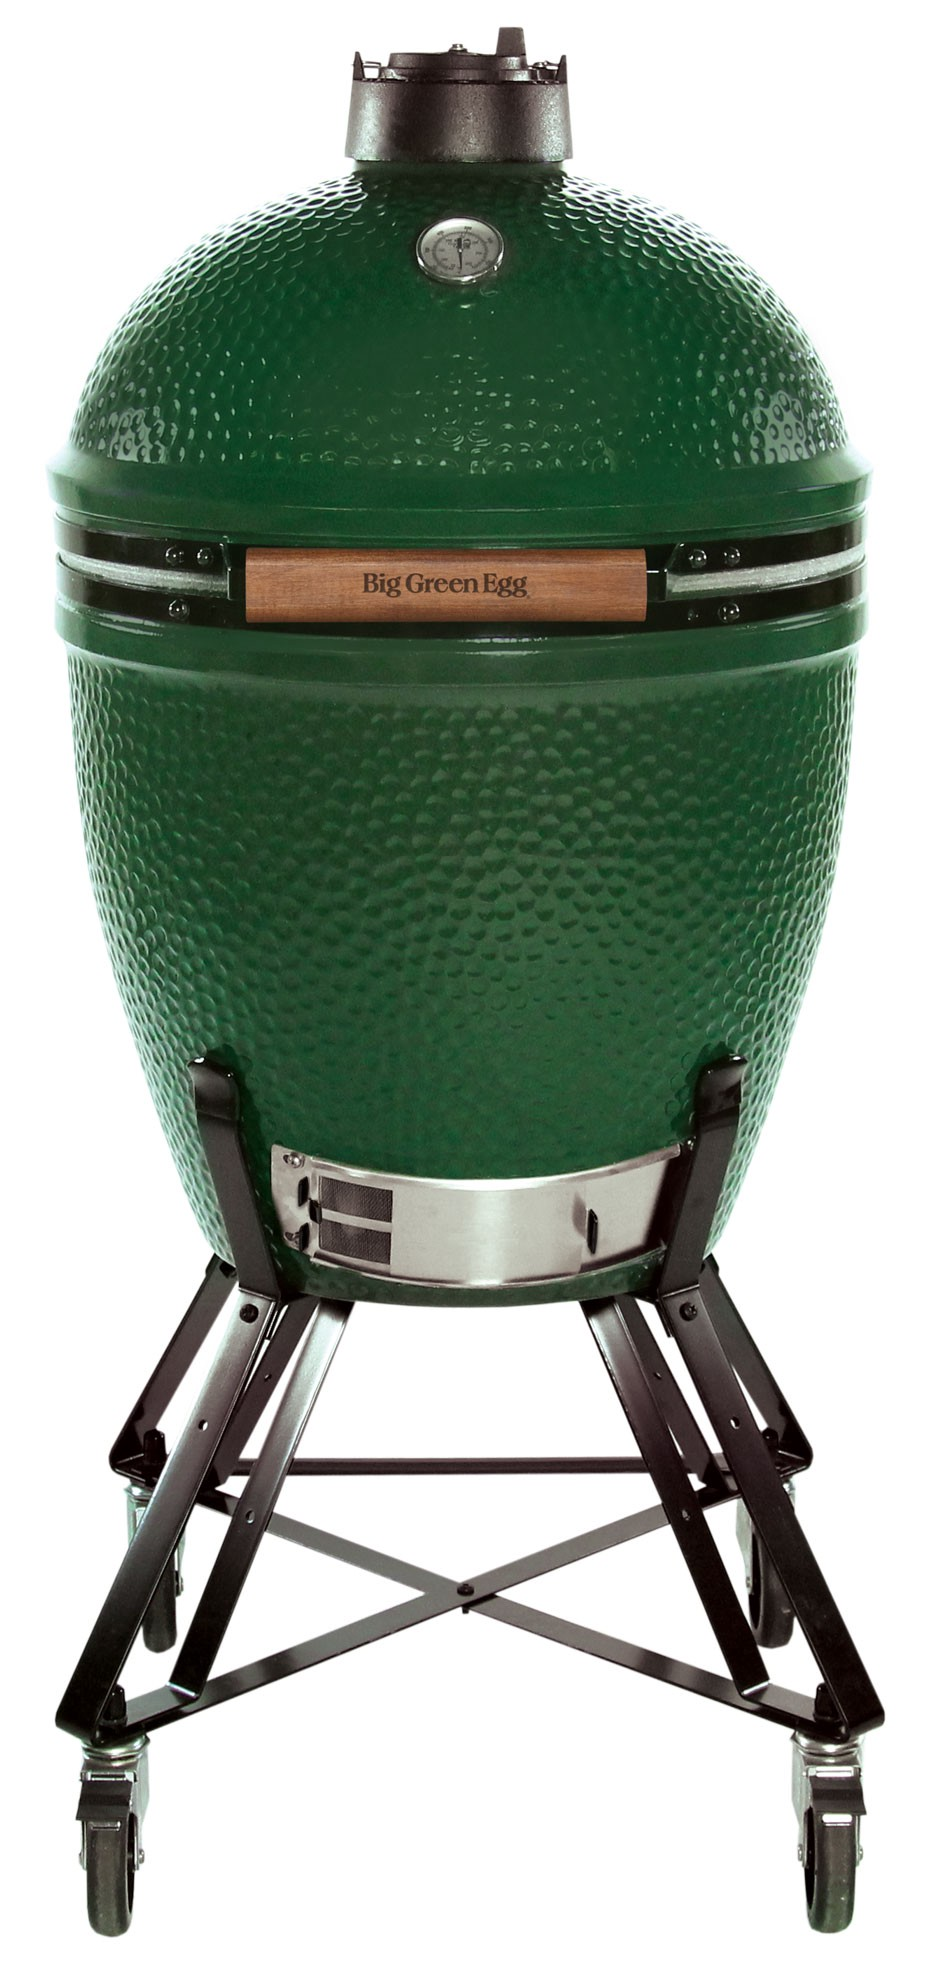 A Beginner S Guide To Kamado Cooking Big Egg Style On A